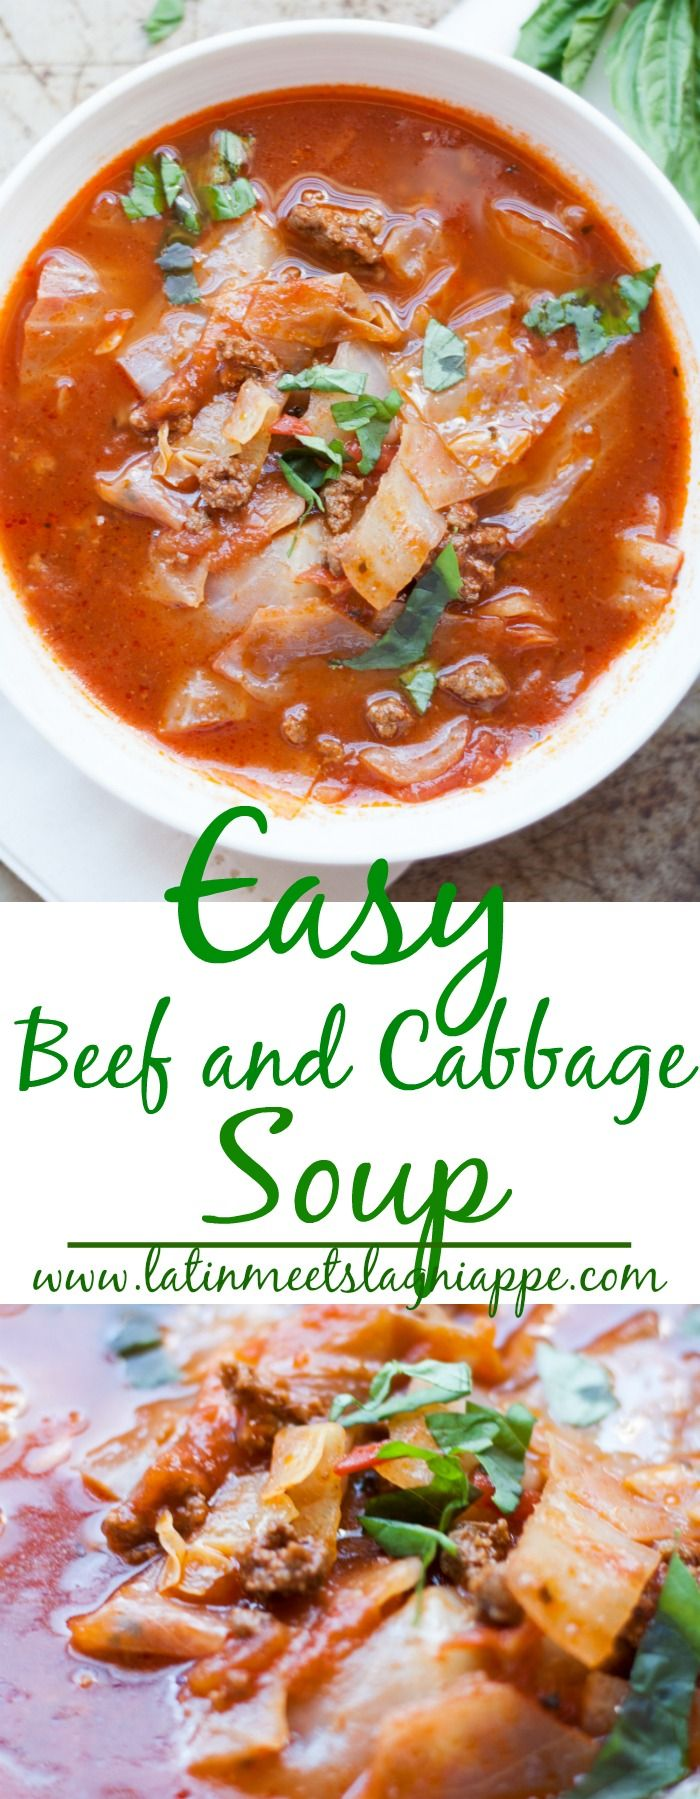 Easy Beef and Cabbage Soup via @latinmeetsla